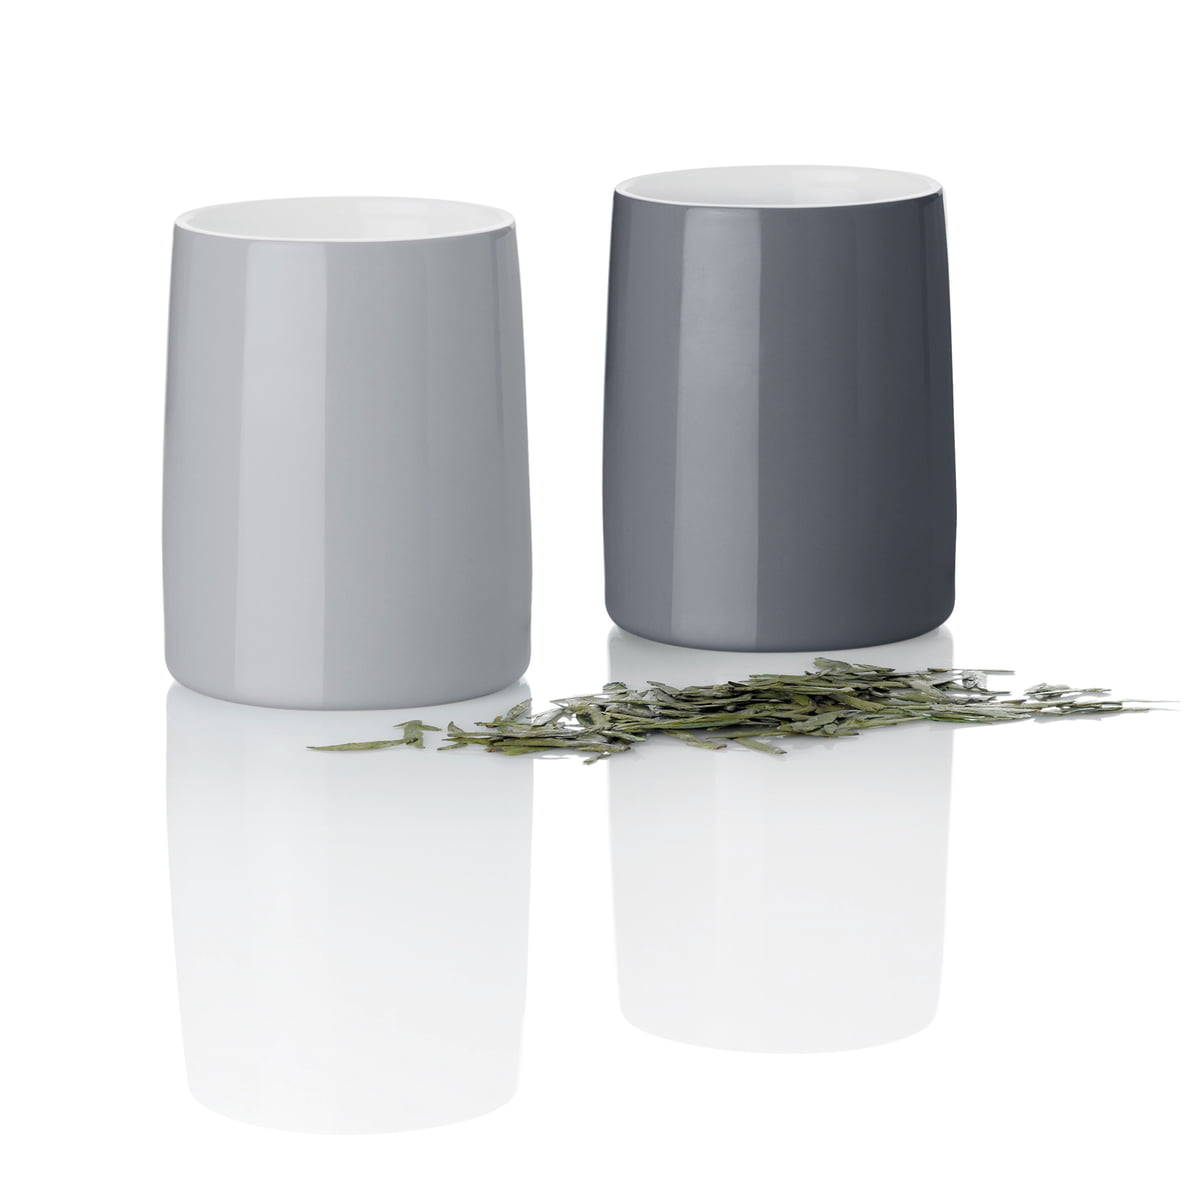 https://www.connox.com/categories/kitchenware/mugs/stelton-em-mug ...